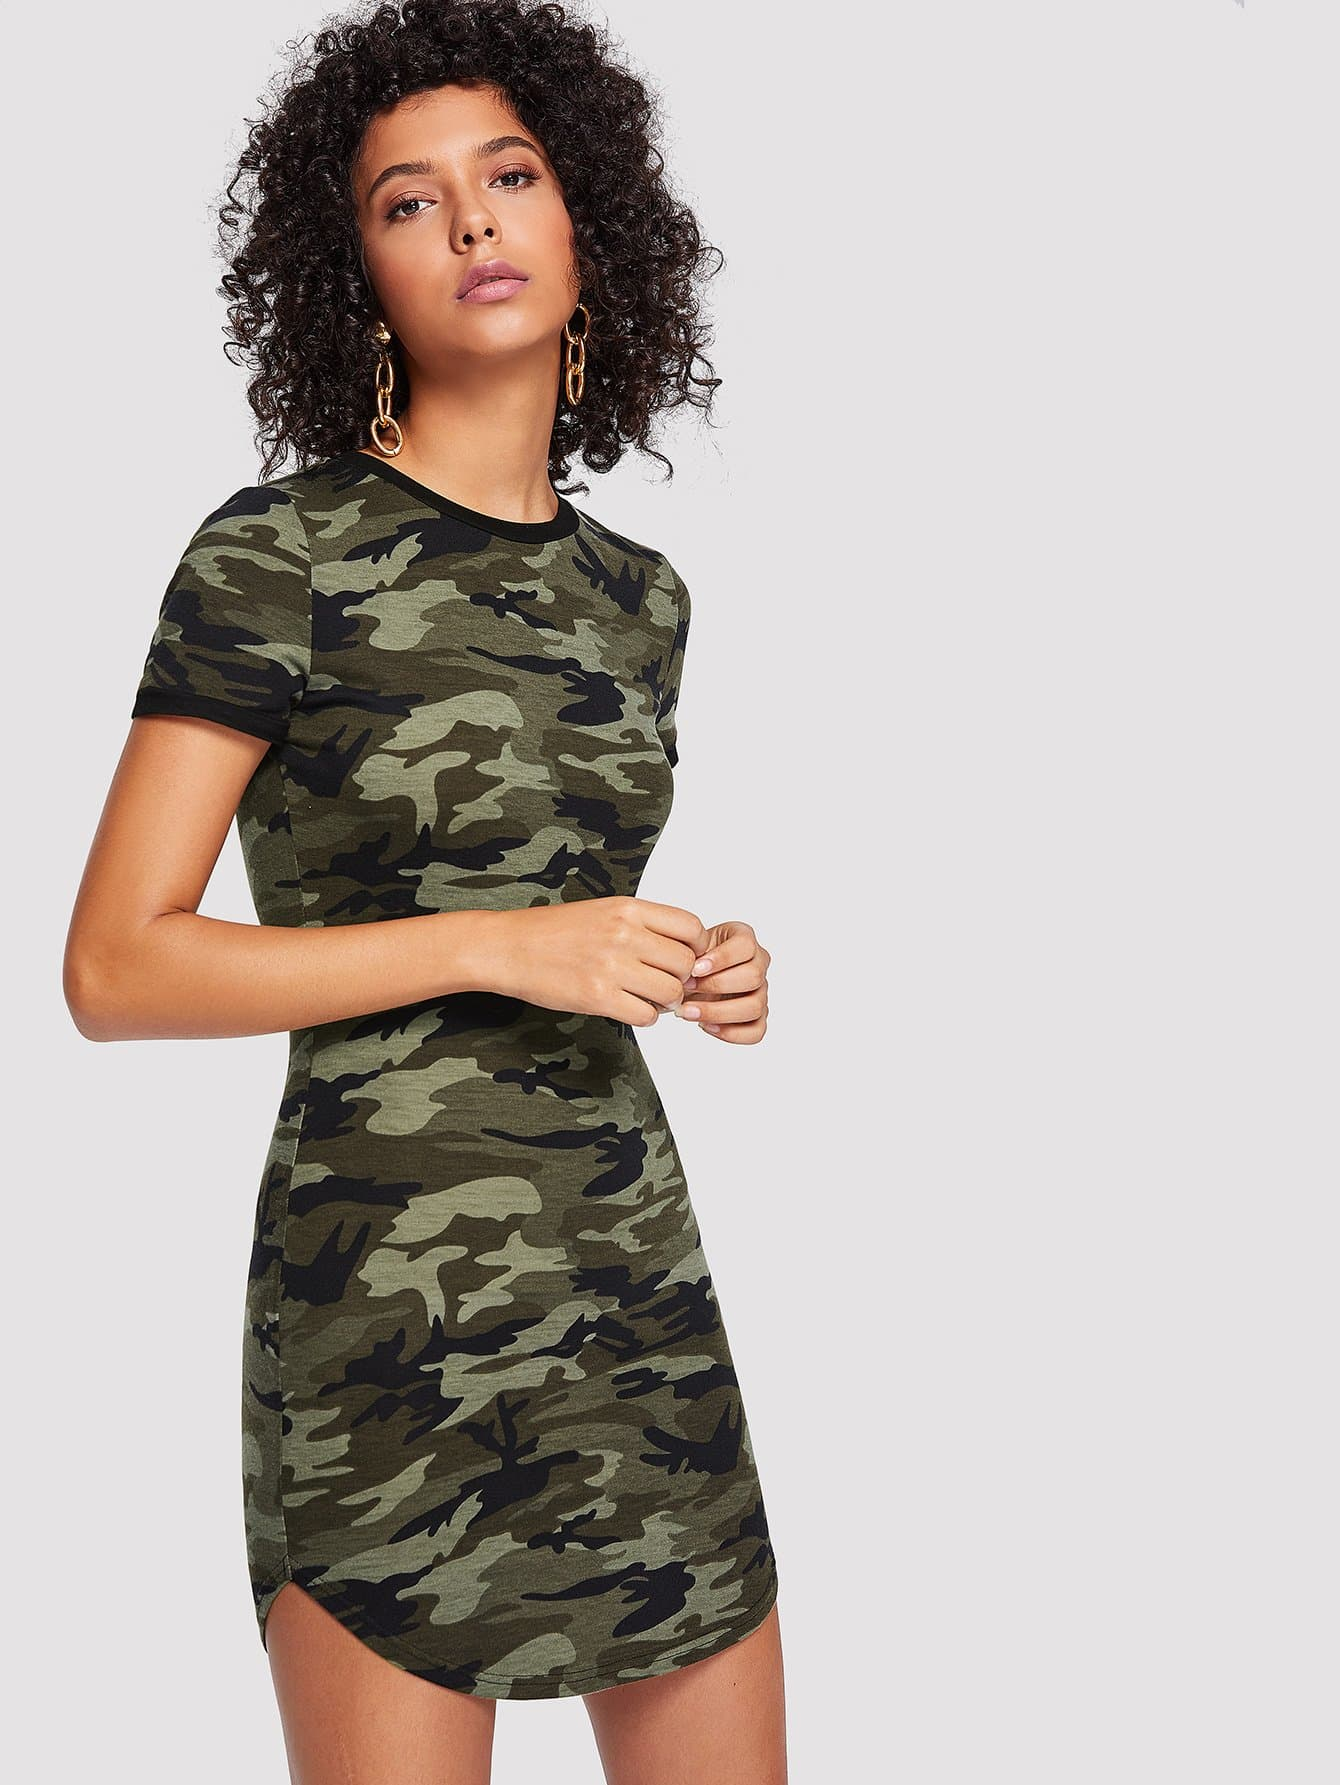 Camo Print Curved Hem Dress batwing sleeve pocket side curved hem textured dress